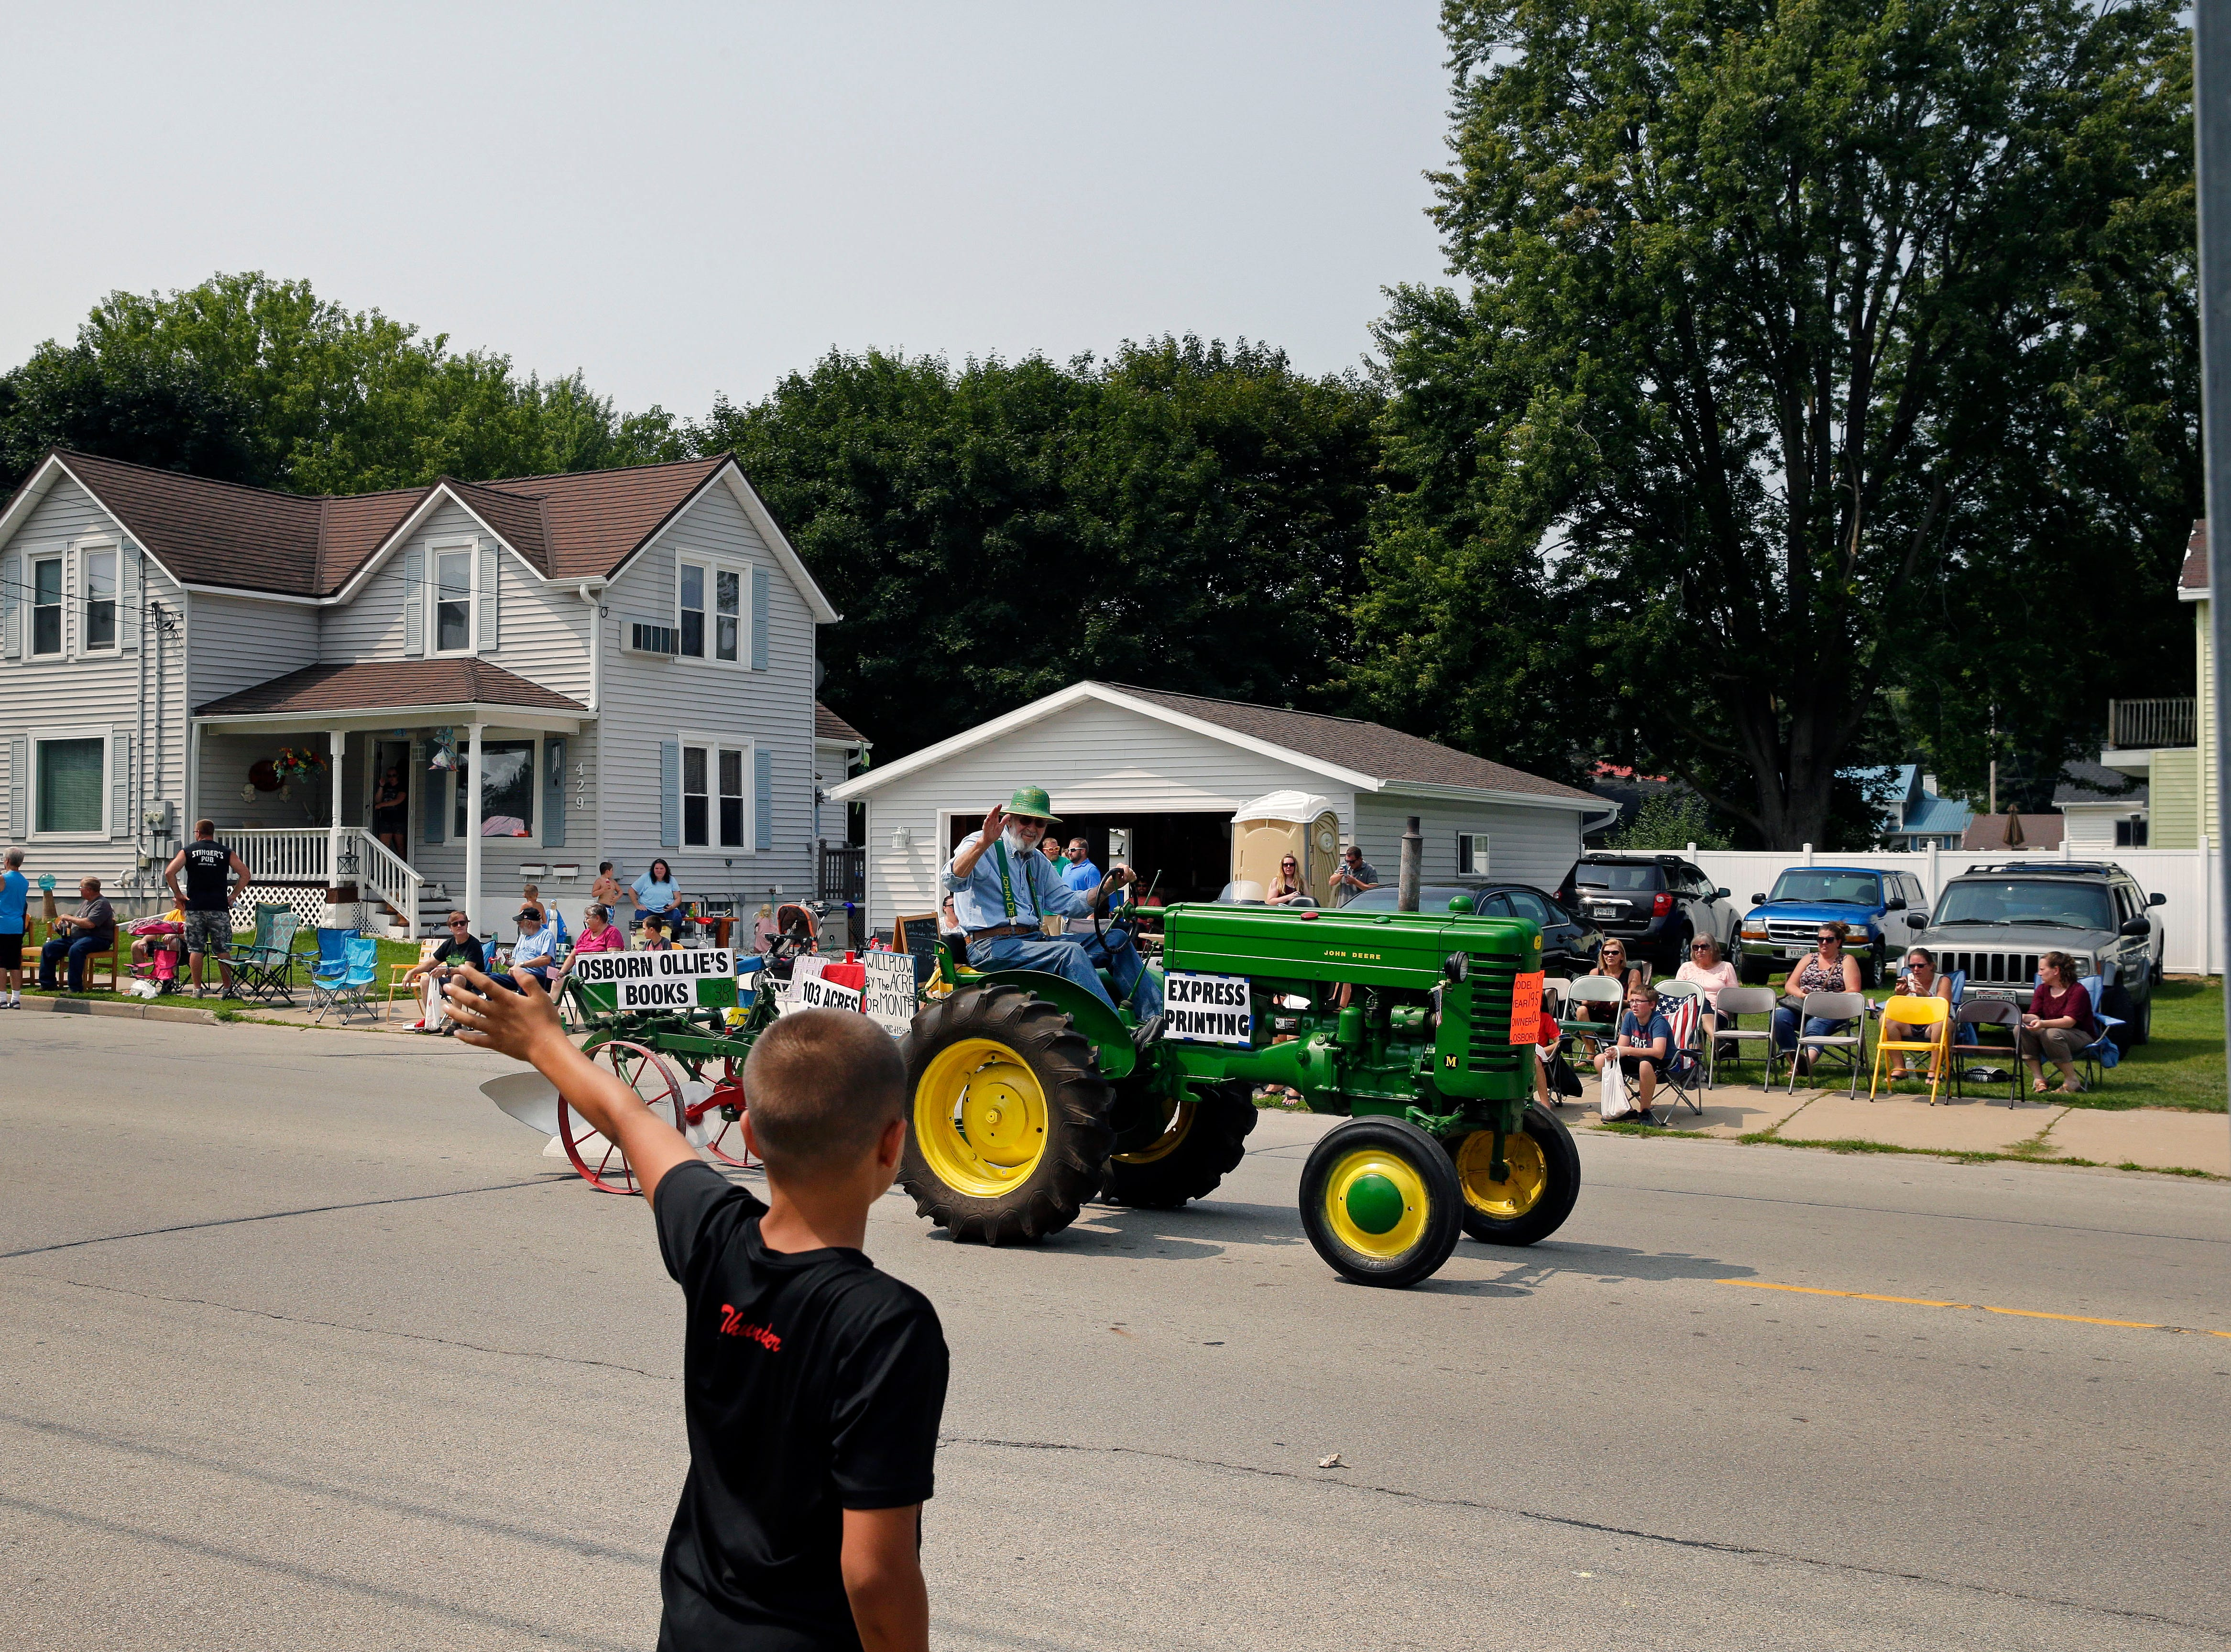 Micah Byers has a wave for a participant during the Hamburger Parade at the 30th annual Burger Fest Saturday, August 11, 2018, in Seymour, Wis.